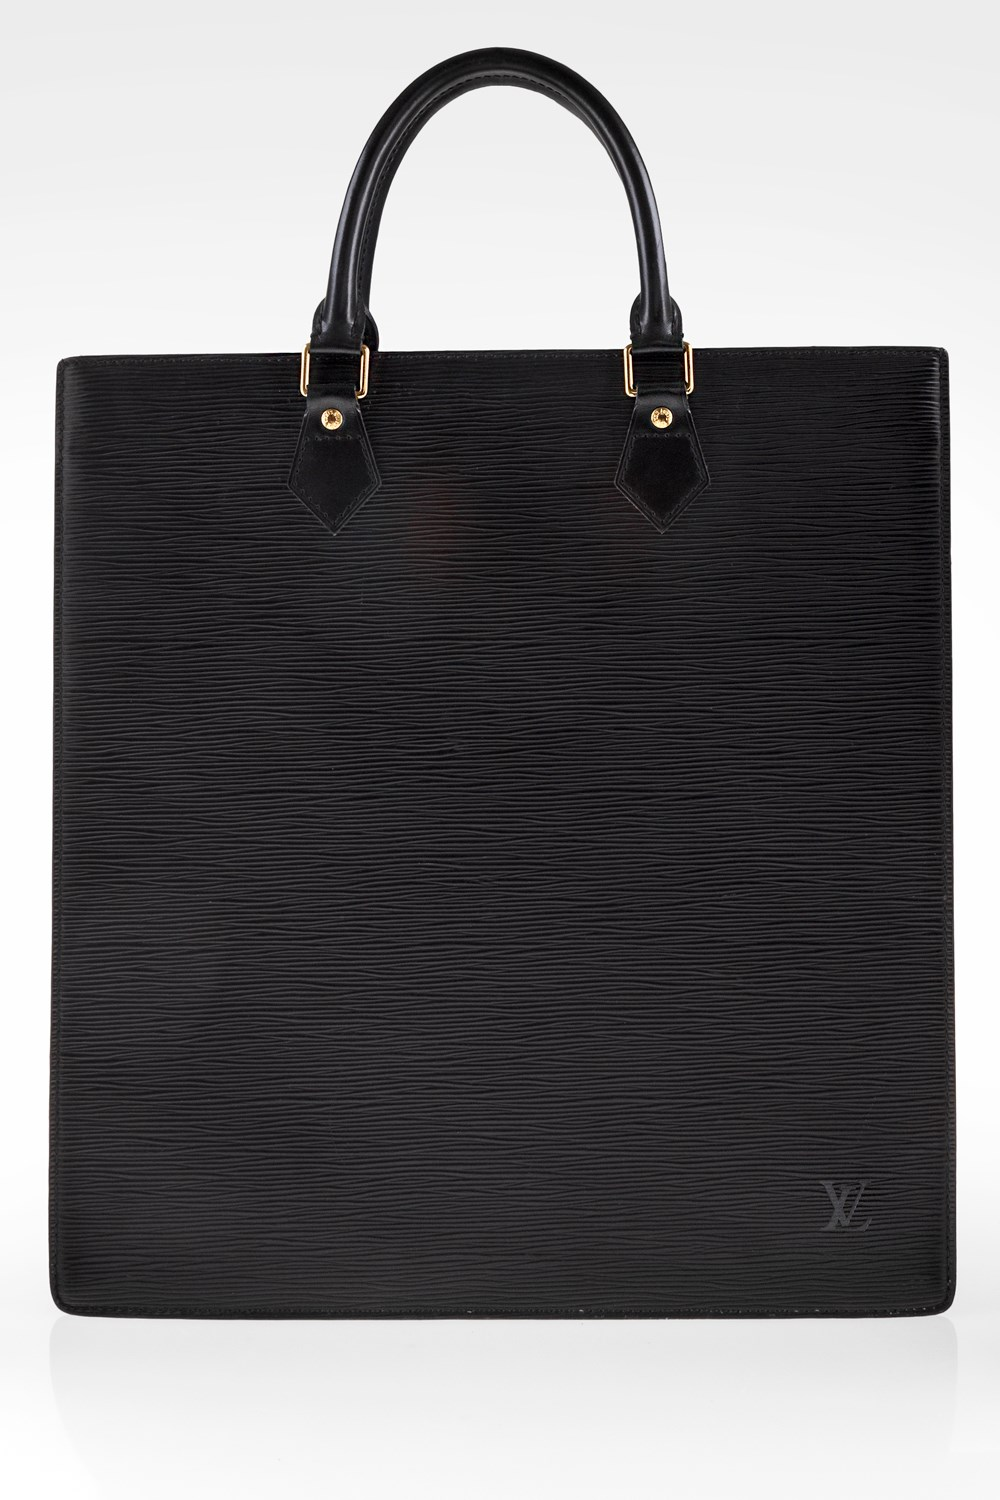 8ce74144cc1e ... Black Epi Leather Sac Plat GM Tote Bag. Mouse ...